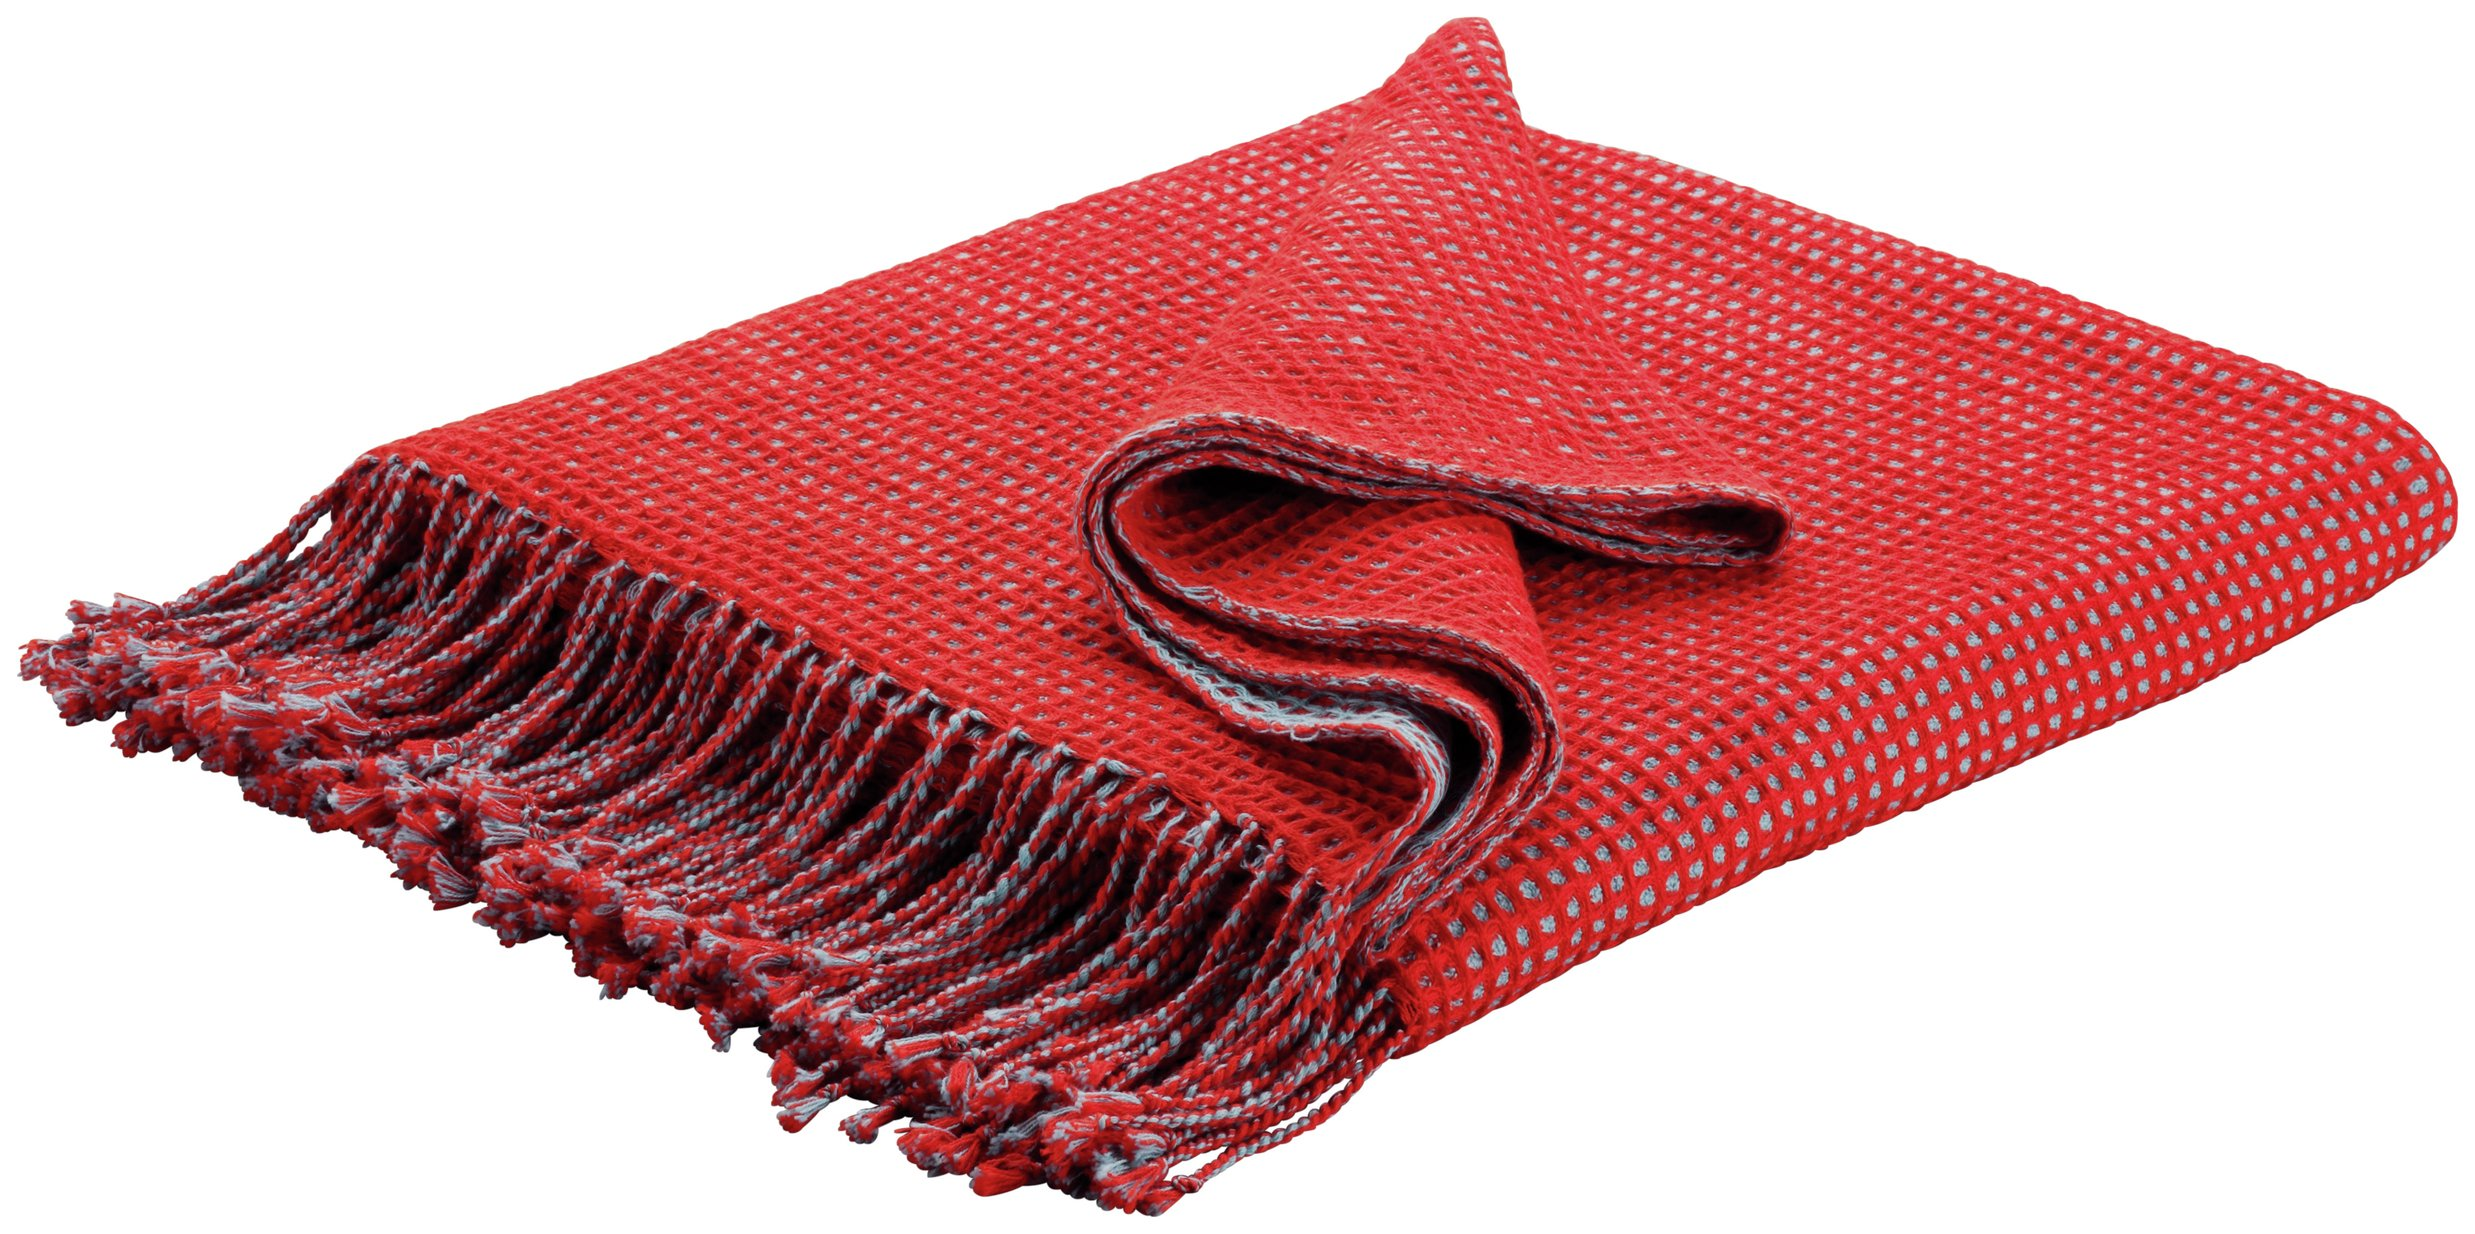 Habitat Abban 150x170cm Throw - Tomato